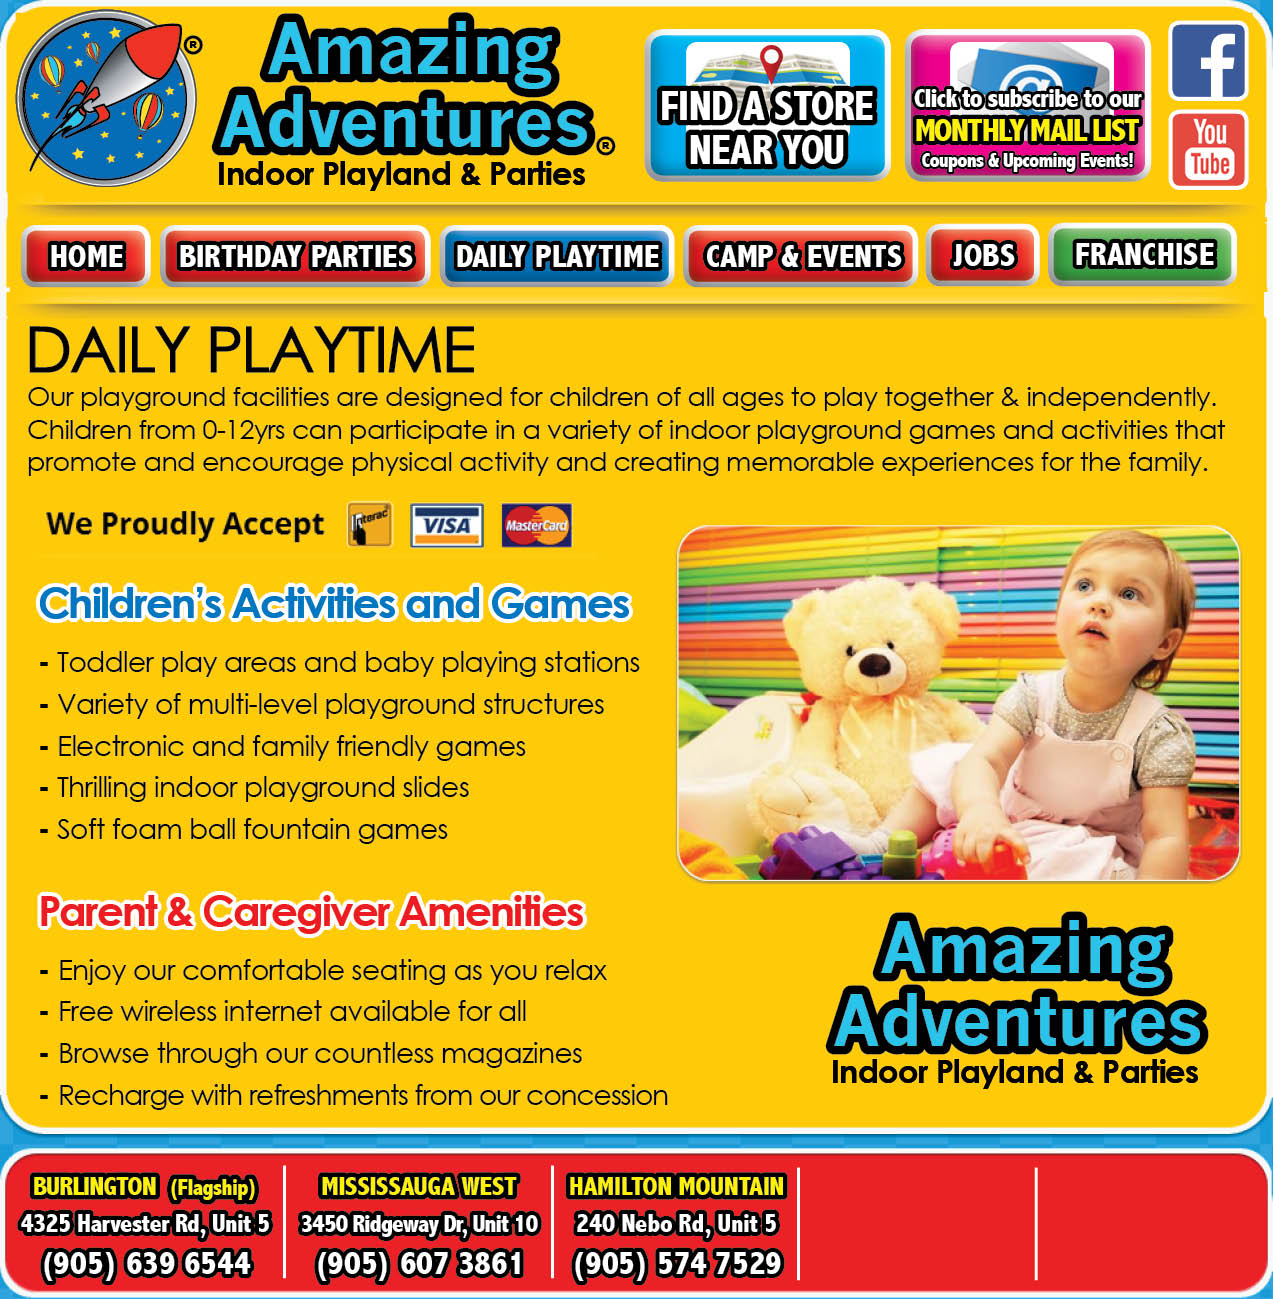 Amazing Adventures Playlands Now 3 Locations And Counting